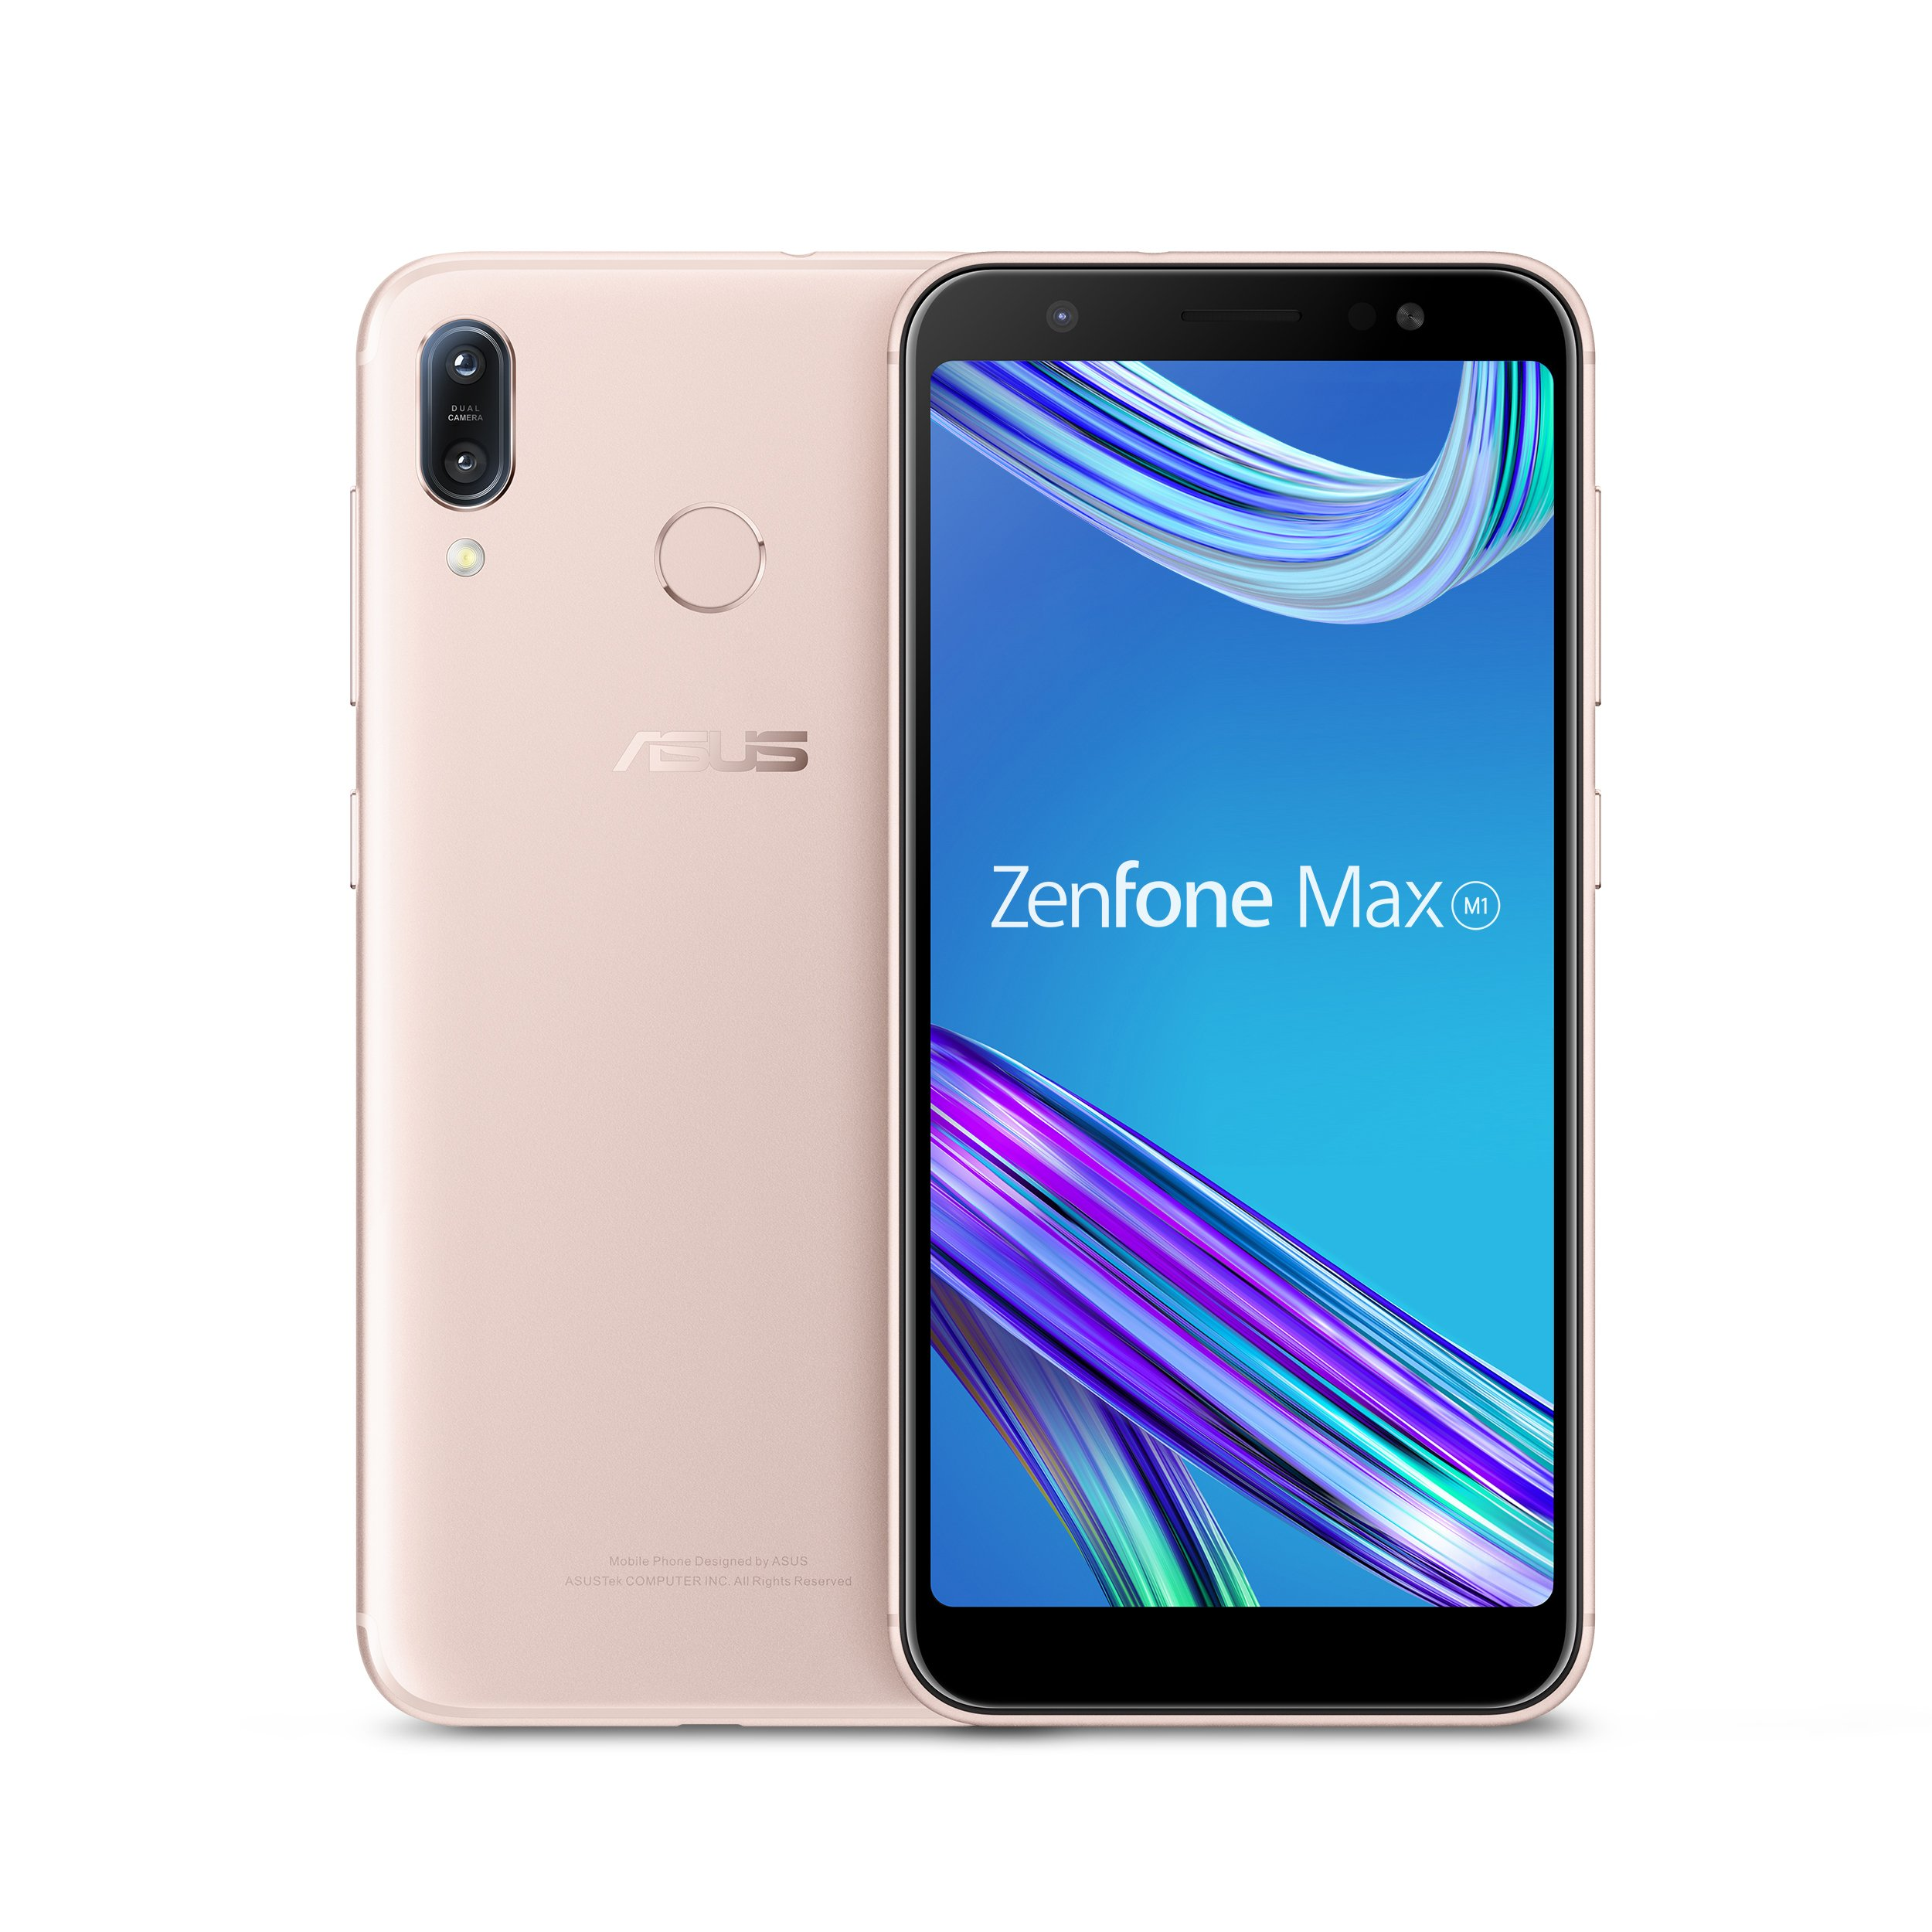 "ASUS ZenFone Max (ZB555KL-S425-2G16G-GD) - 5.5""HD+ 2GB RAM 16GB storage LTE Unlocked Dual SIM Cell phone - US Warranty - Sunlight Gold"